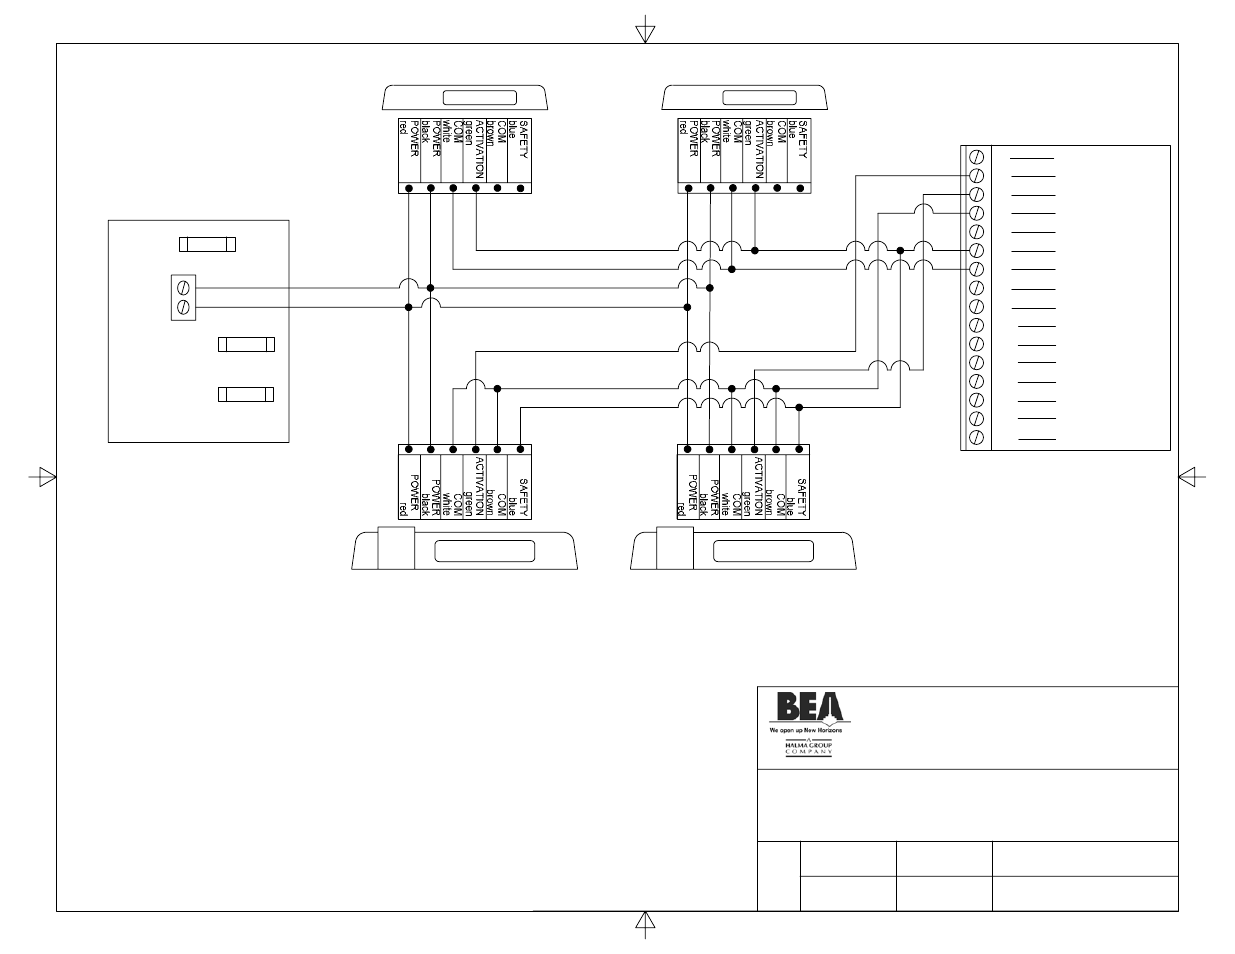 emg wiring diagram pa2 of 3 way switch afterburner harness